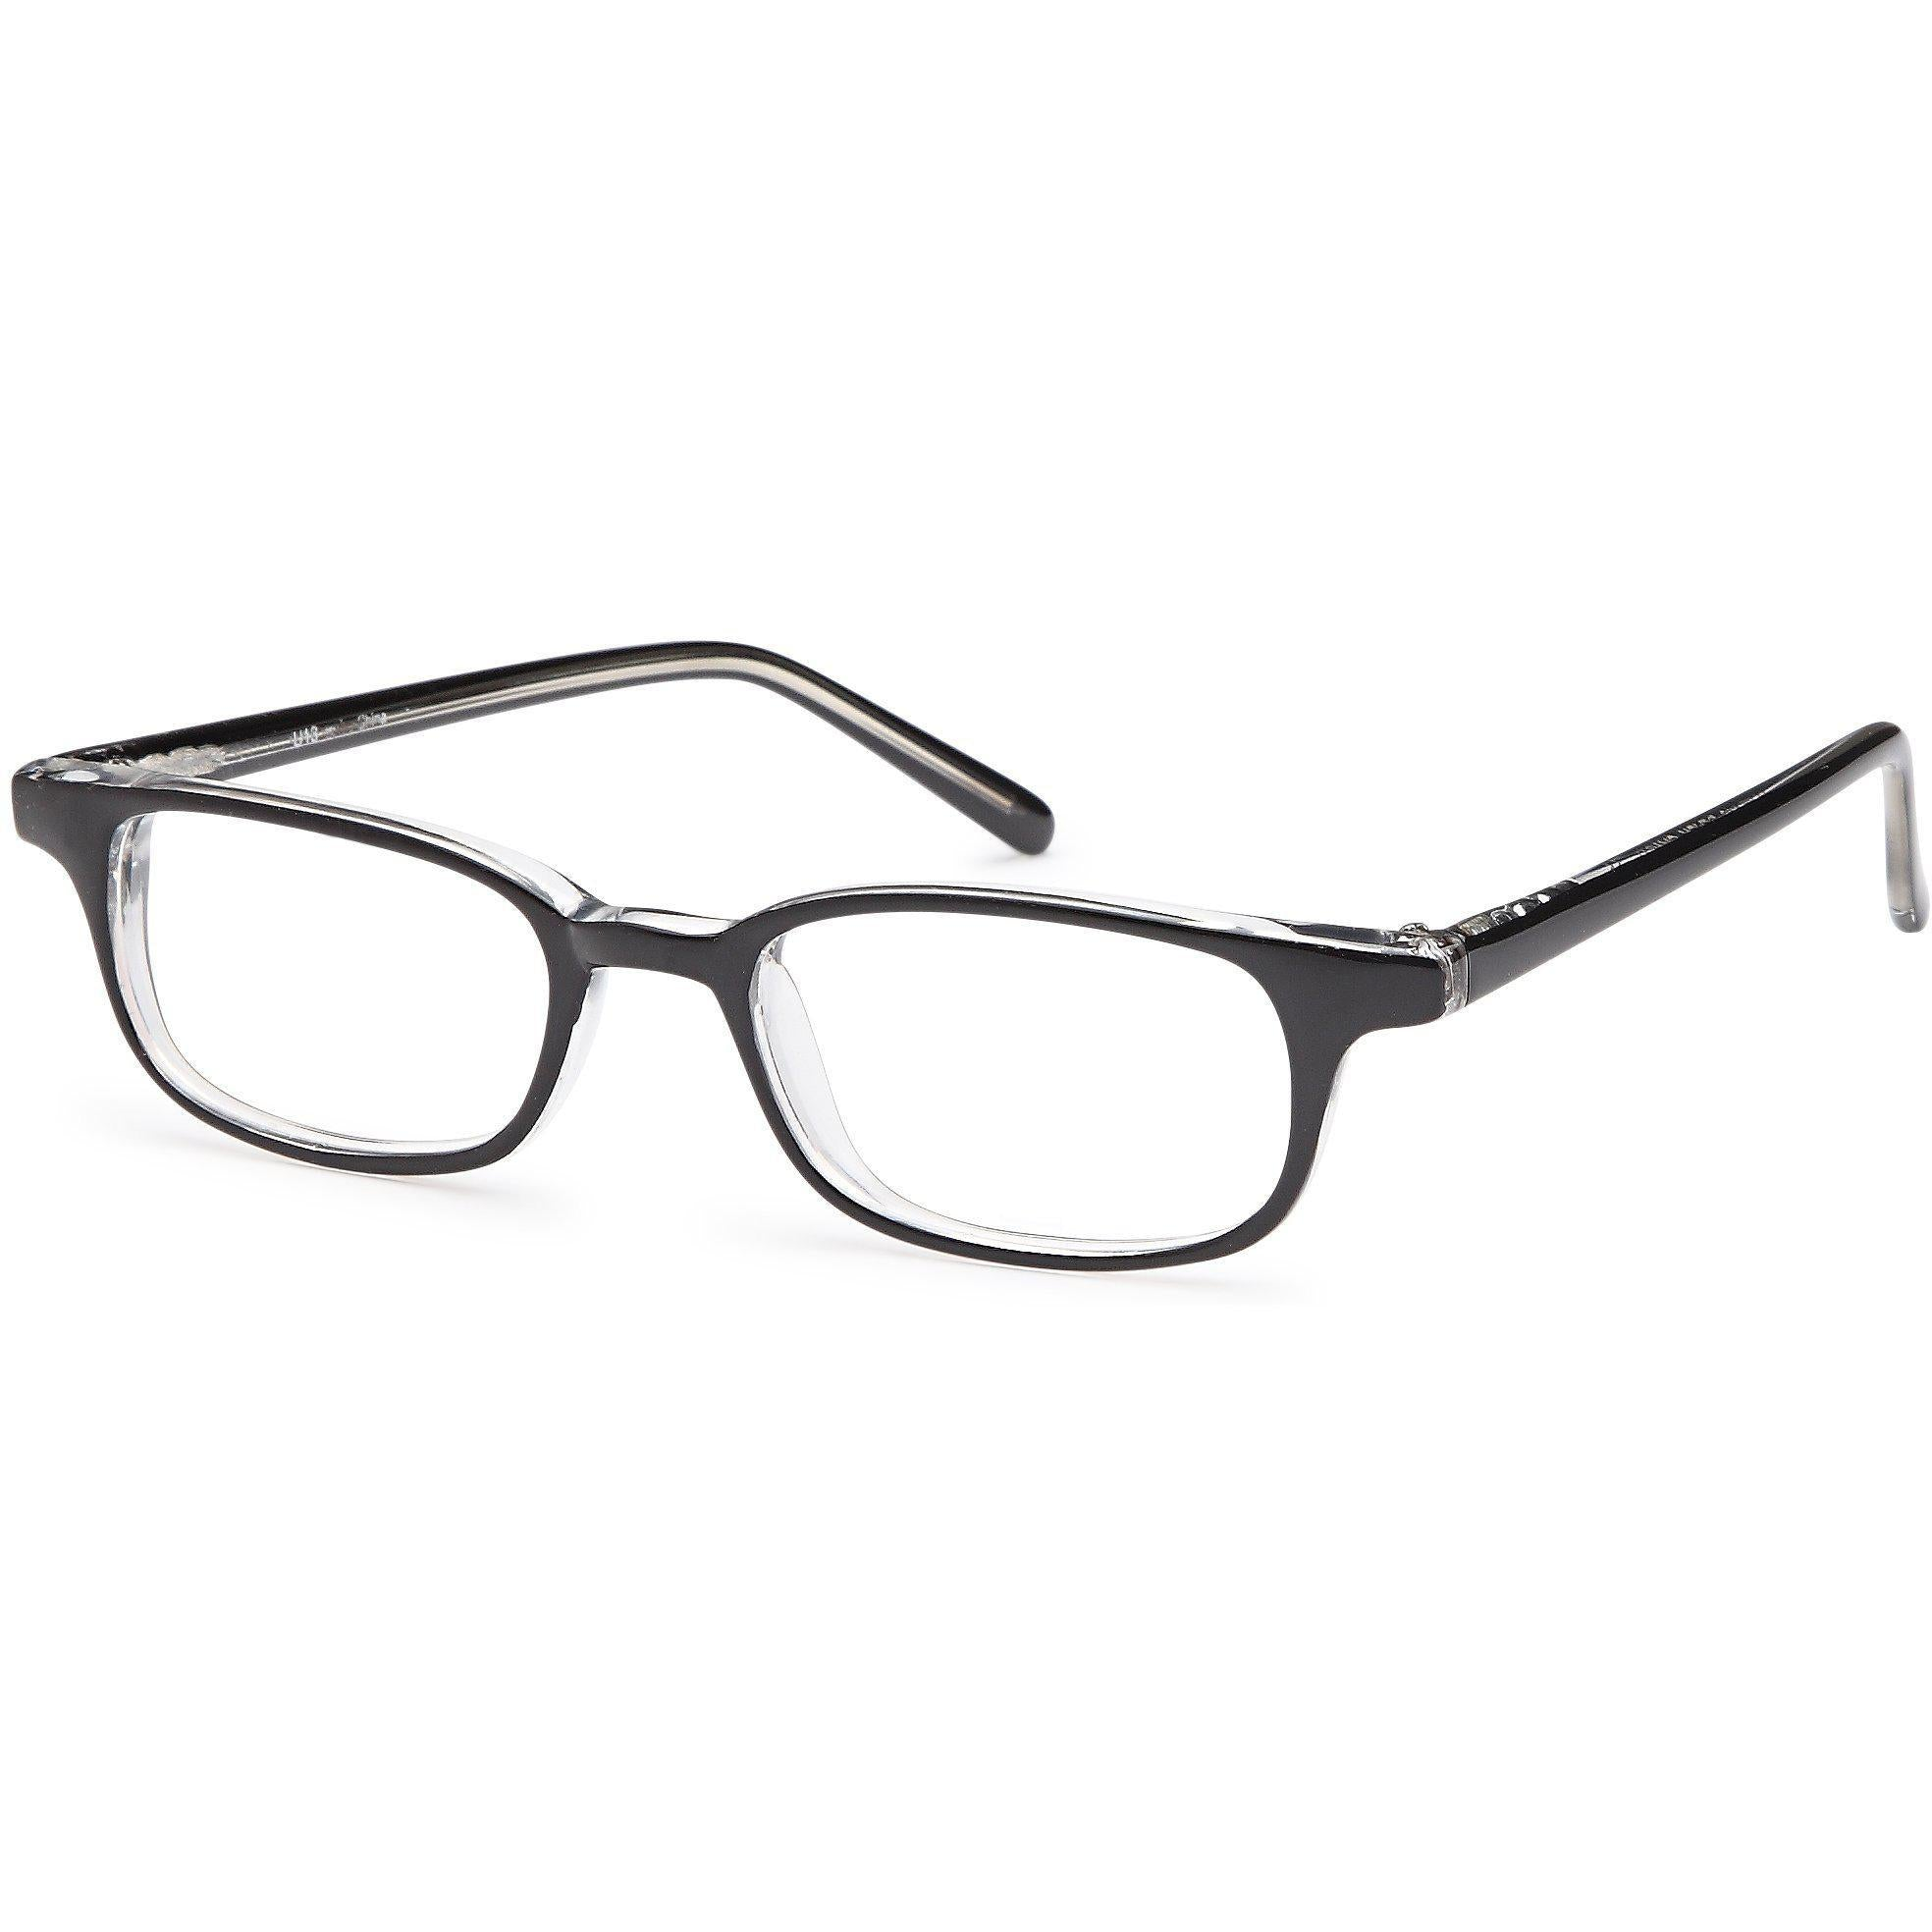 4U Prescription Glasses U 13 Optical Eyeglasses Frame - timetoshade